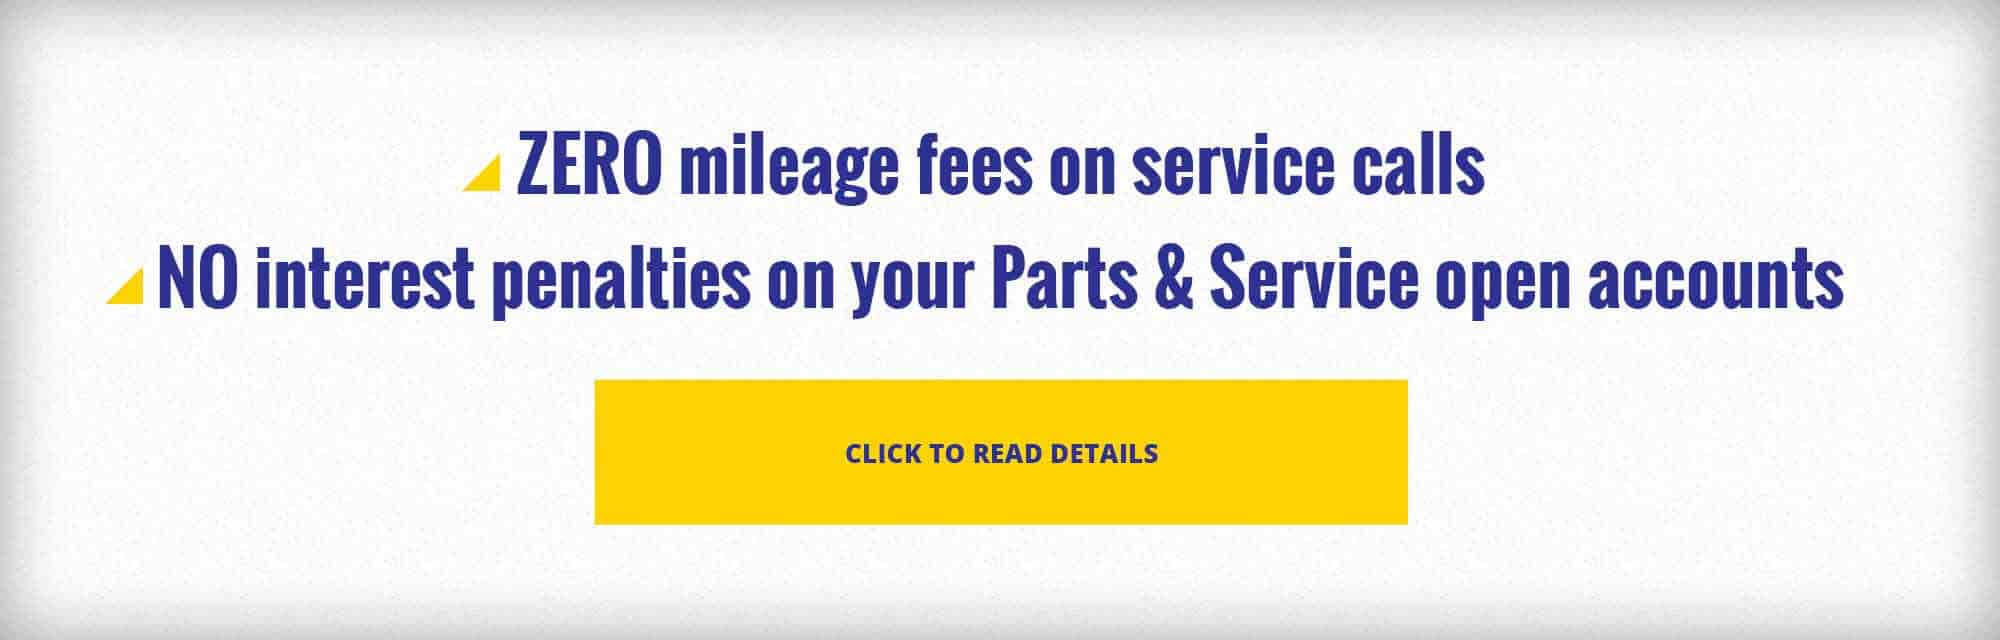 ZERO mileage fees on service calls